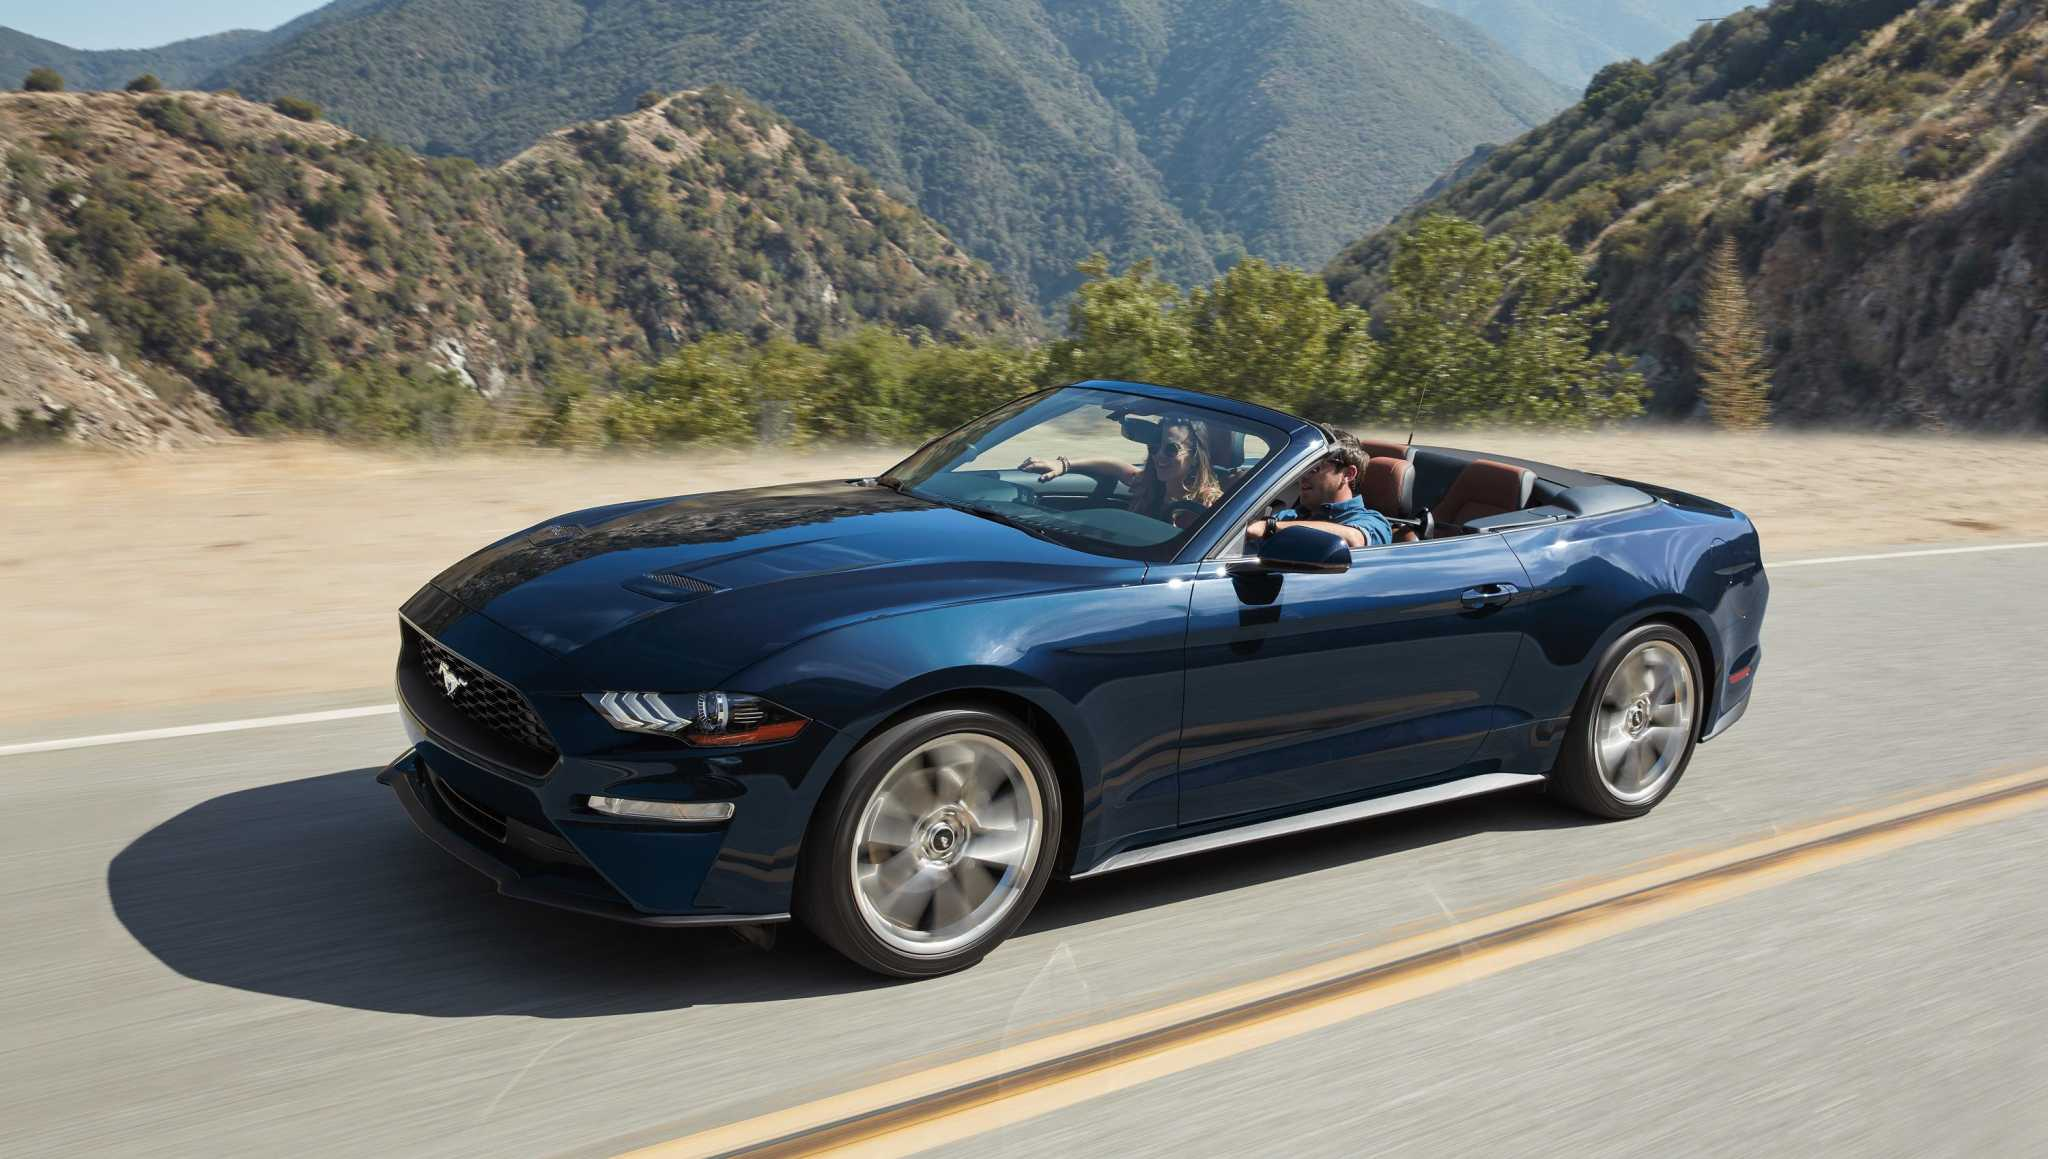 Mustang convertible: You'll giggle, too